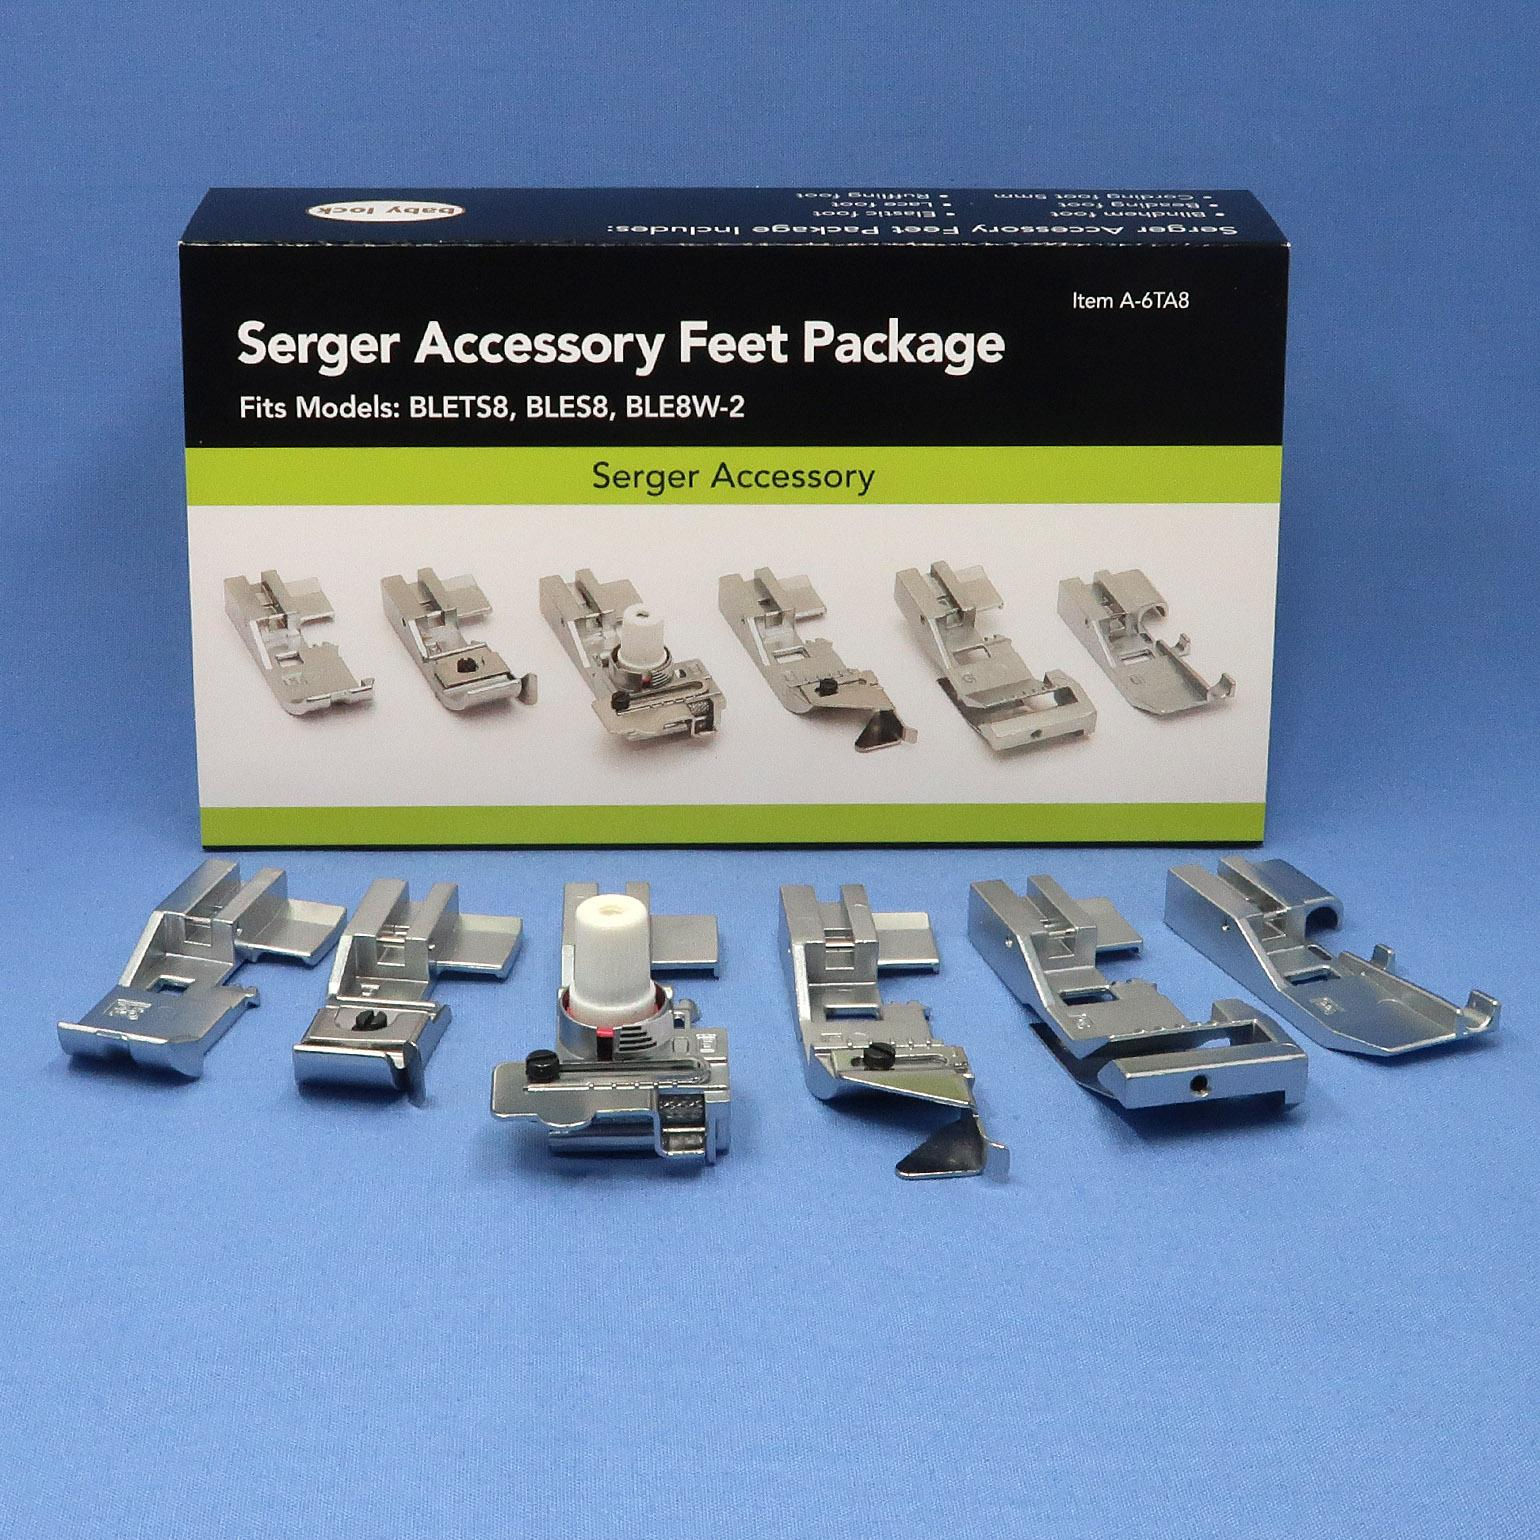 6 Pack of Accessory Feet (8-Thread Machines)